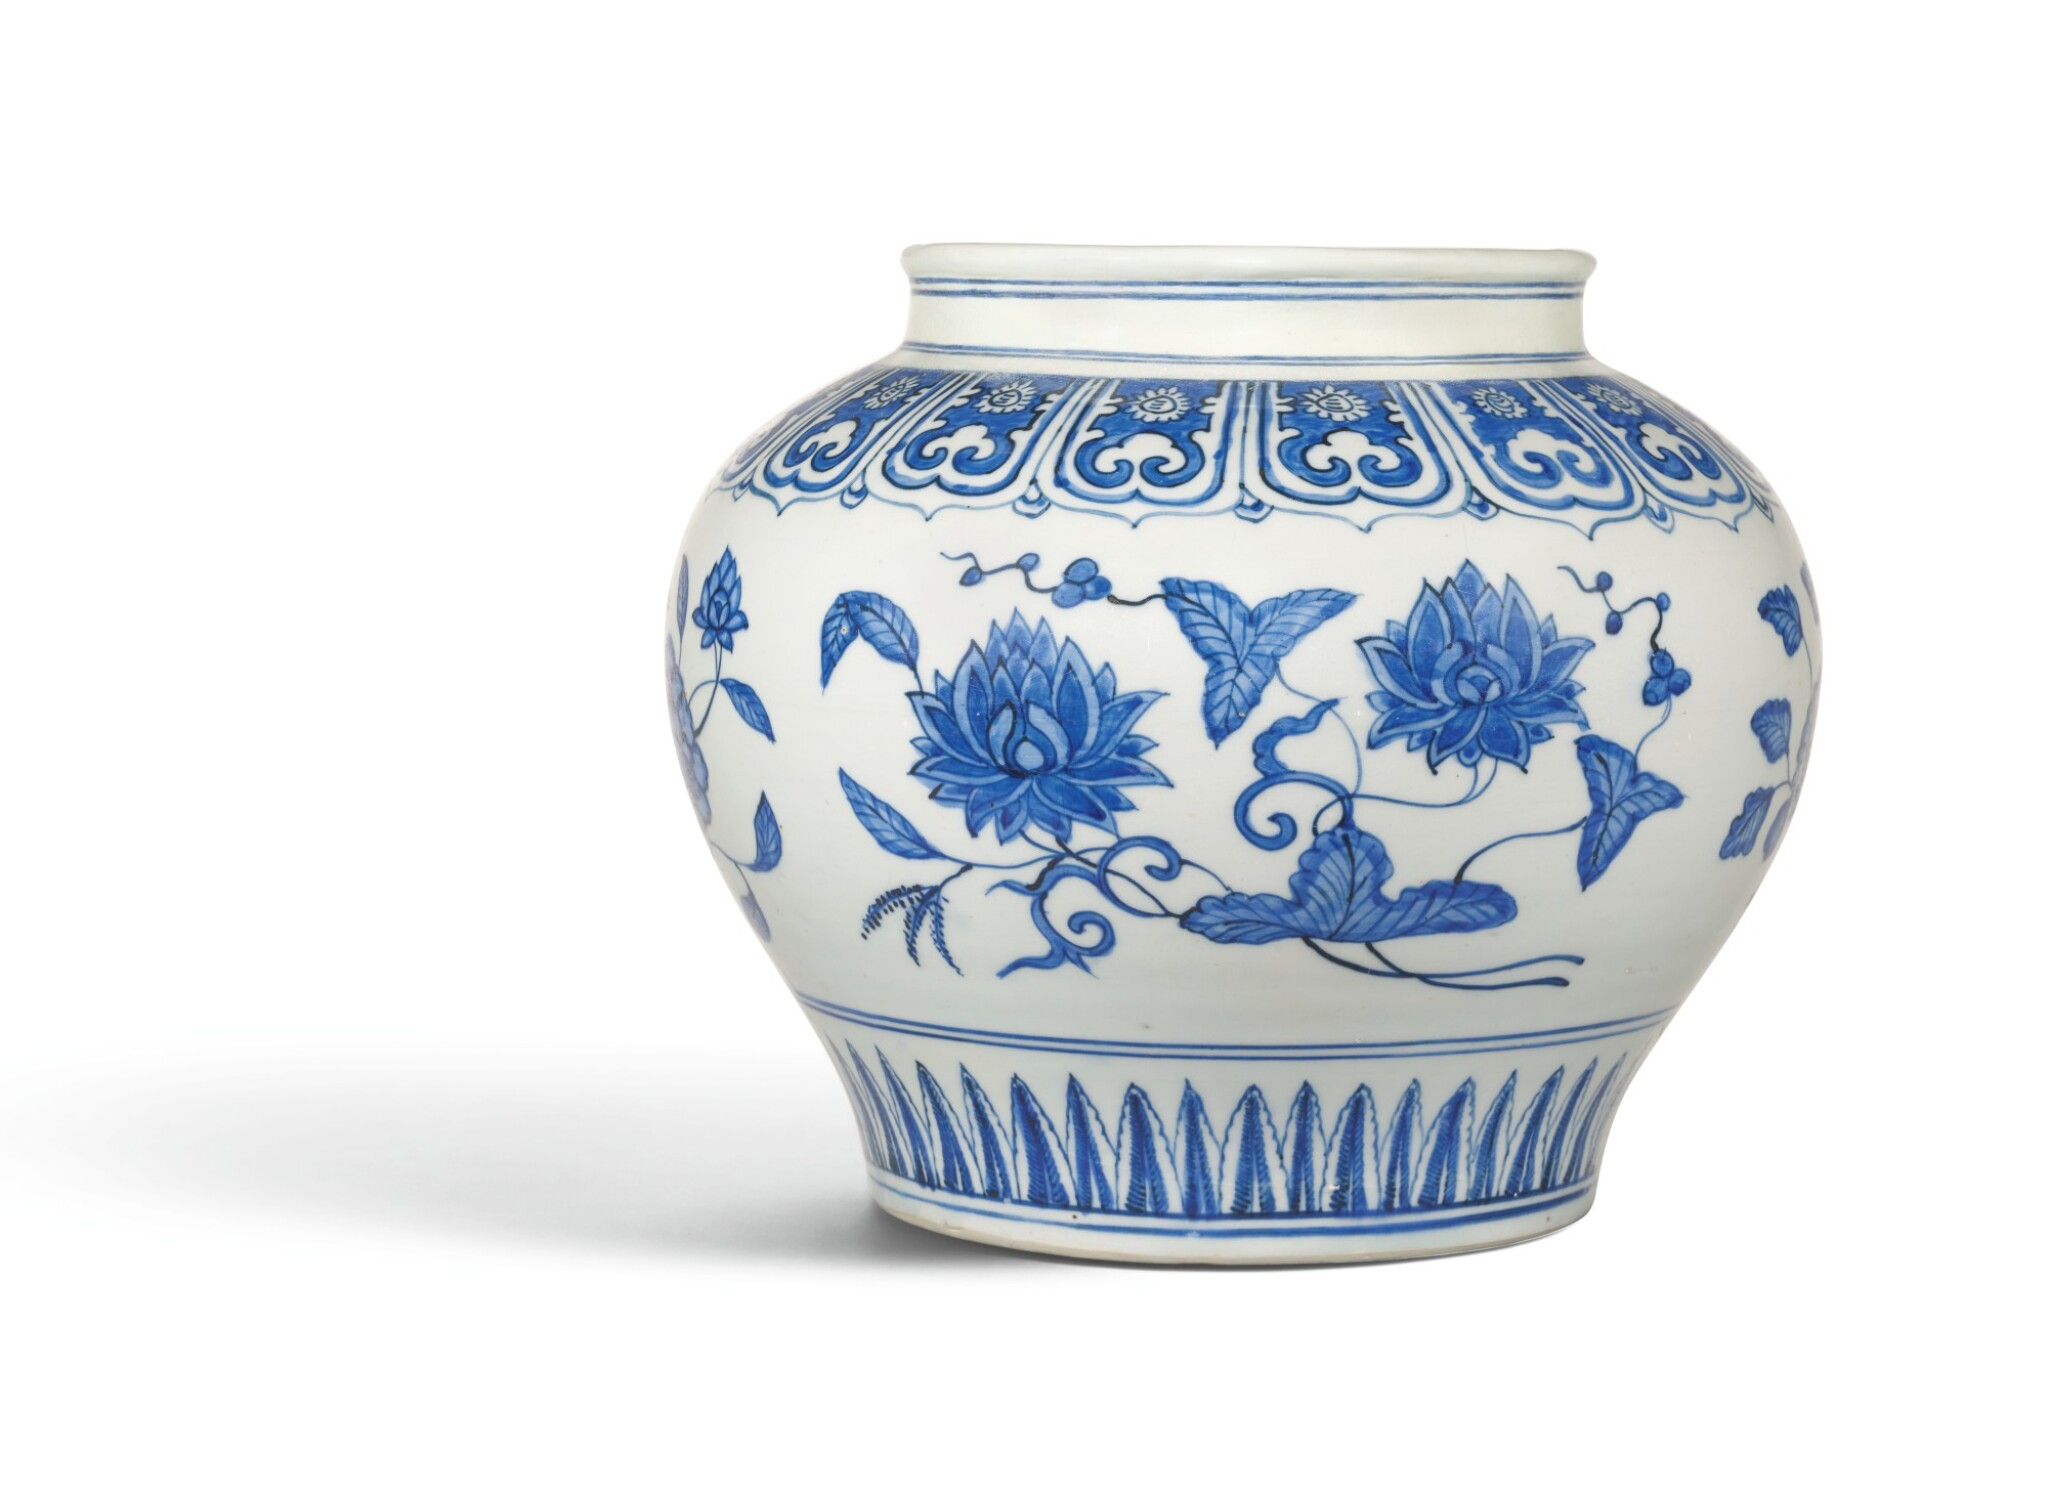 View full screen - View 1 of Lot 4. A RARE BLUE AND WHITE 'FLORAL' JAR, JIAJING MARK AND PERIOD | 明嘉靖 青花花卉紋罐 《大明嘉靖年製》款.